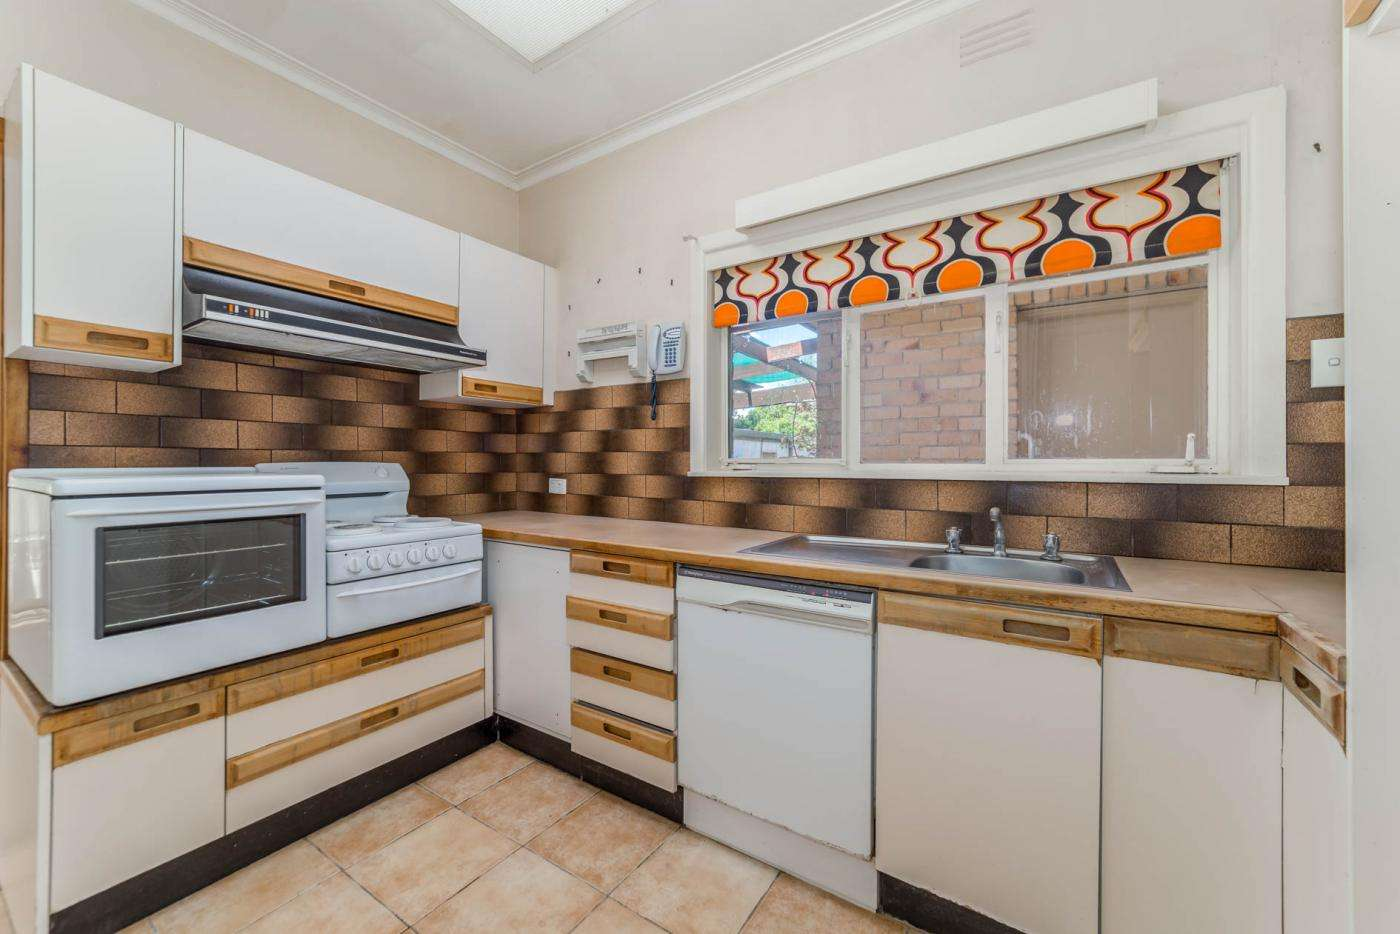 Main view of Homely house listing, 22 Almurta Road, Bentleigh East, VIC 3165